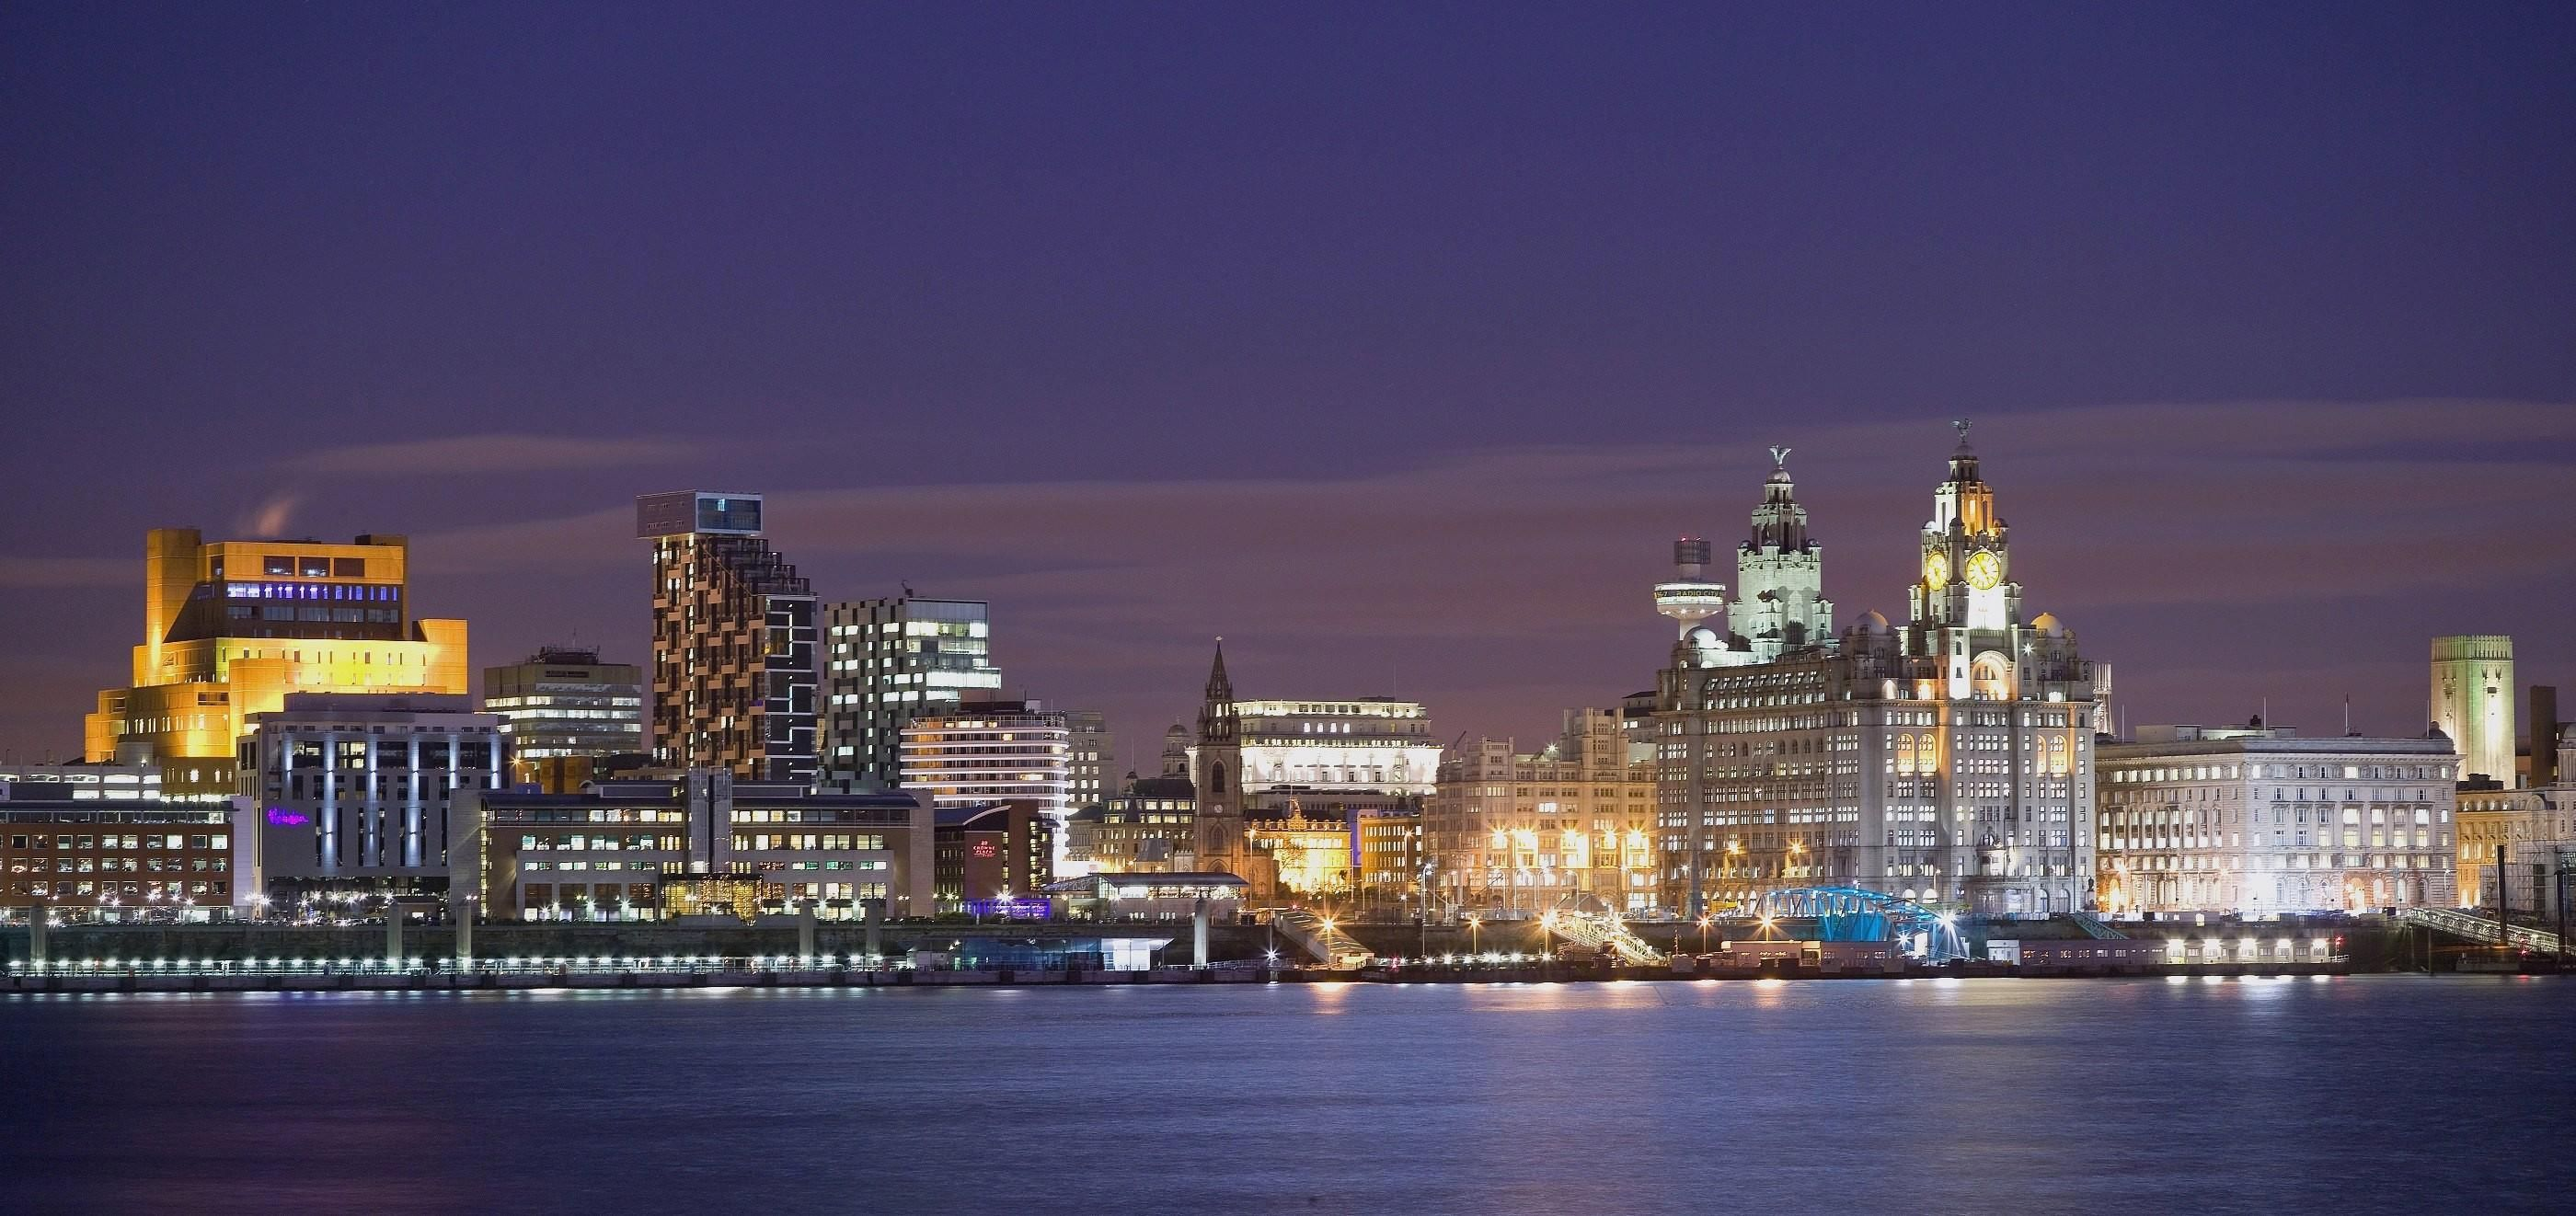 Liverpool City Hd Images Get Free Top Quality Liverpool City Hd Images For Your Desktop Pc Background Liverpool Skyline Liverpool Waterfront Liverpool City